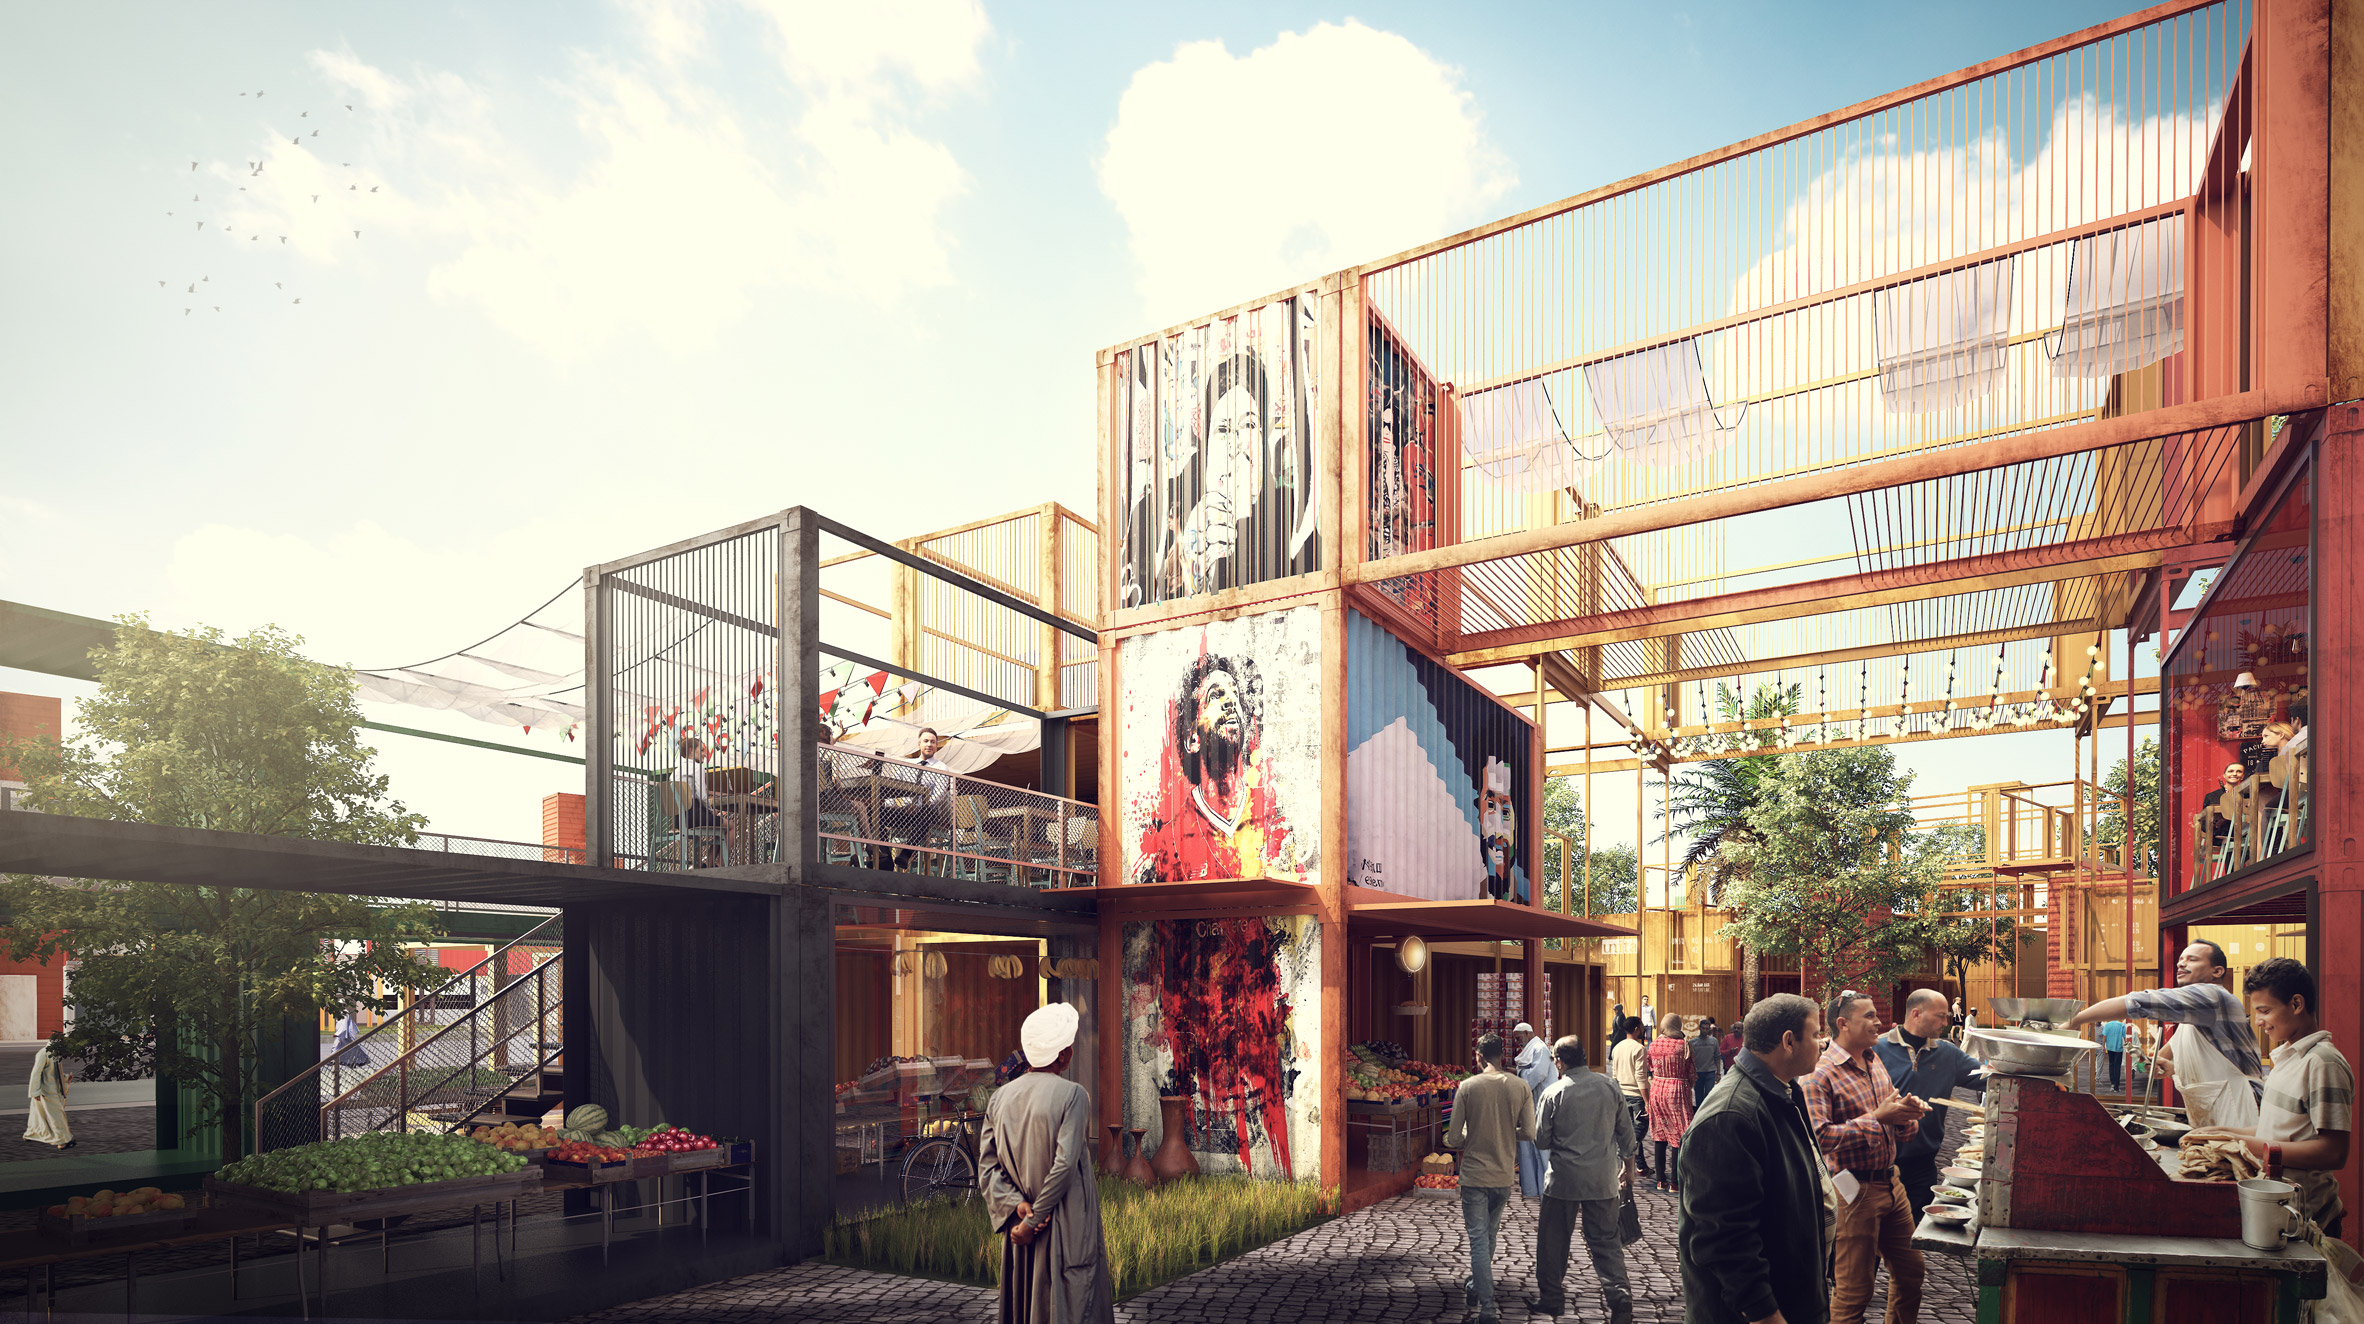 Sheltainer offers shipping containers as alternative housing for Cairo's cemetery-dwellers